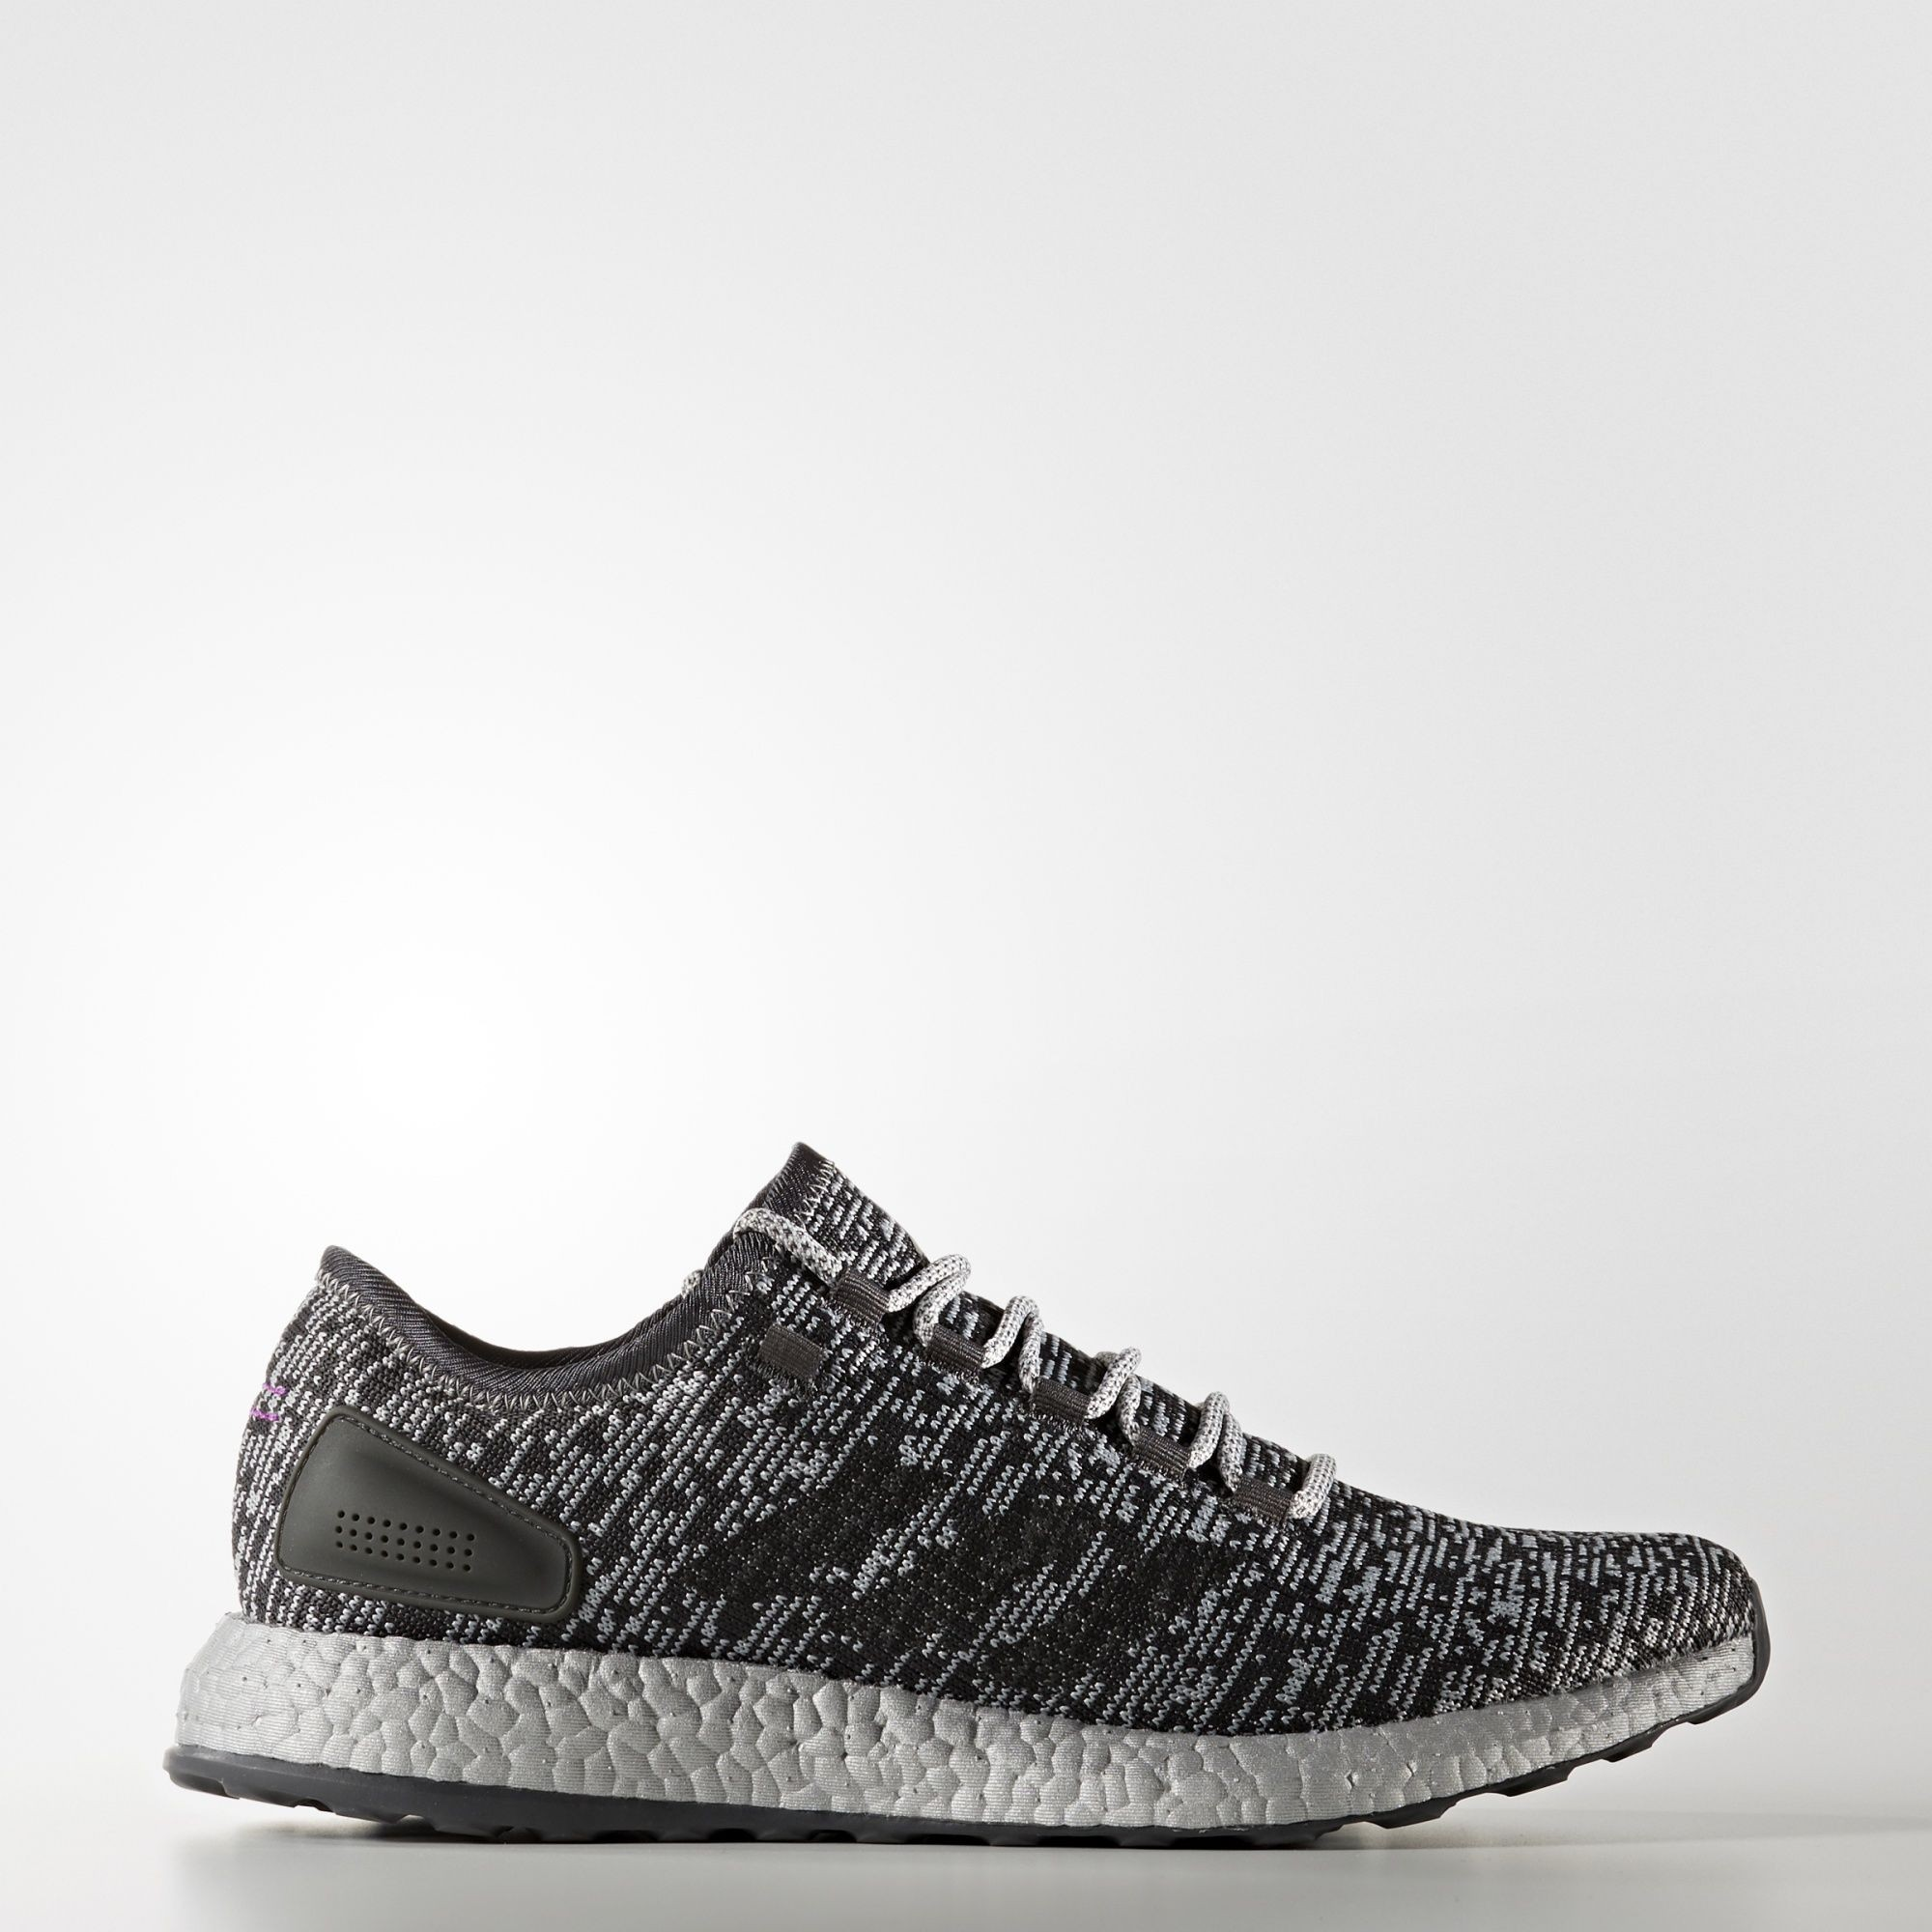 Adidas Pure Boost boutique